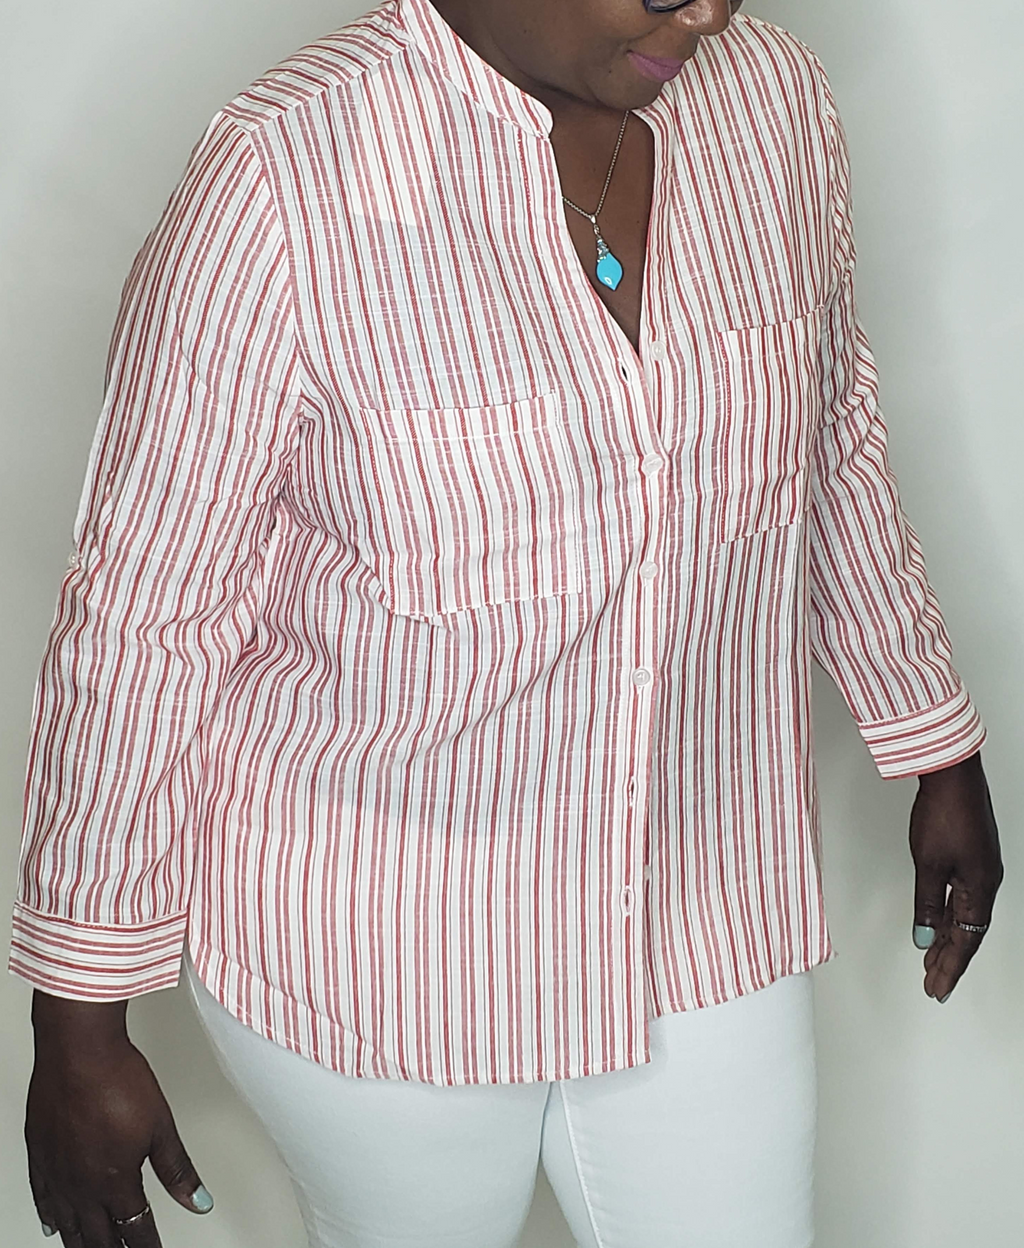 Peppermint Striped Blouse - Touch Me Textures